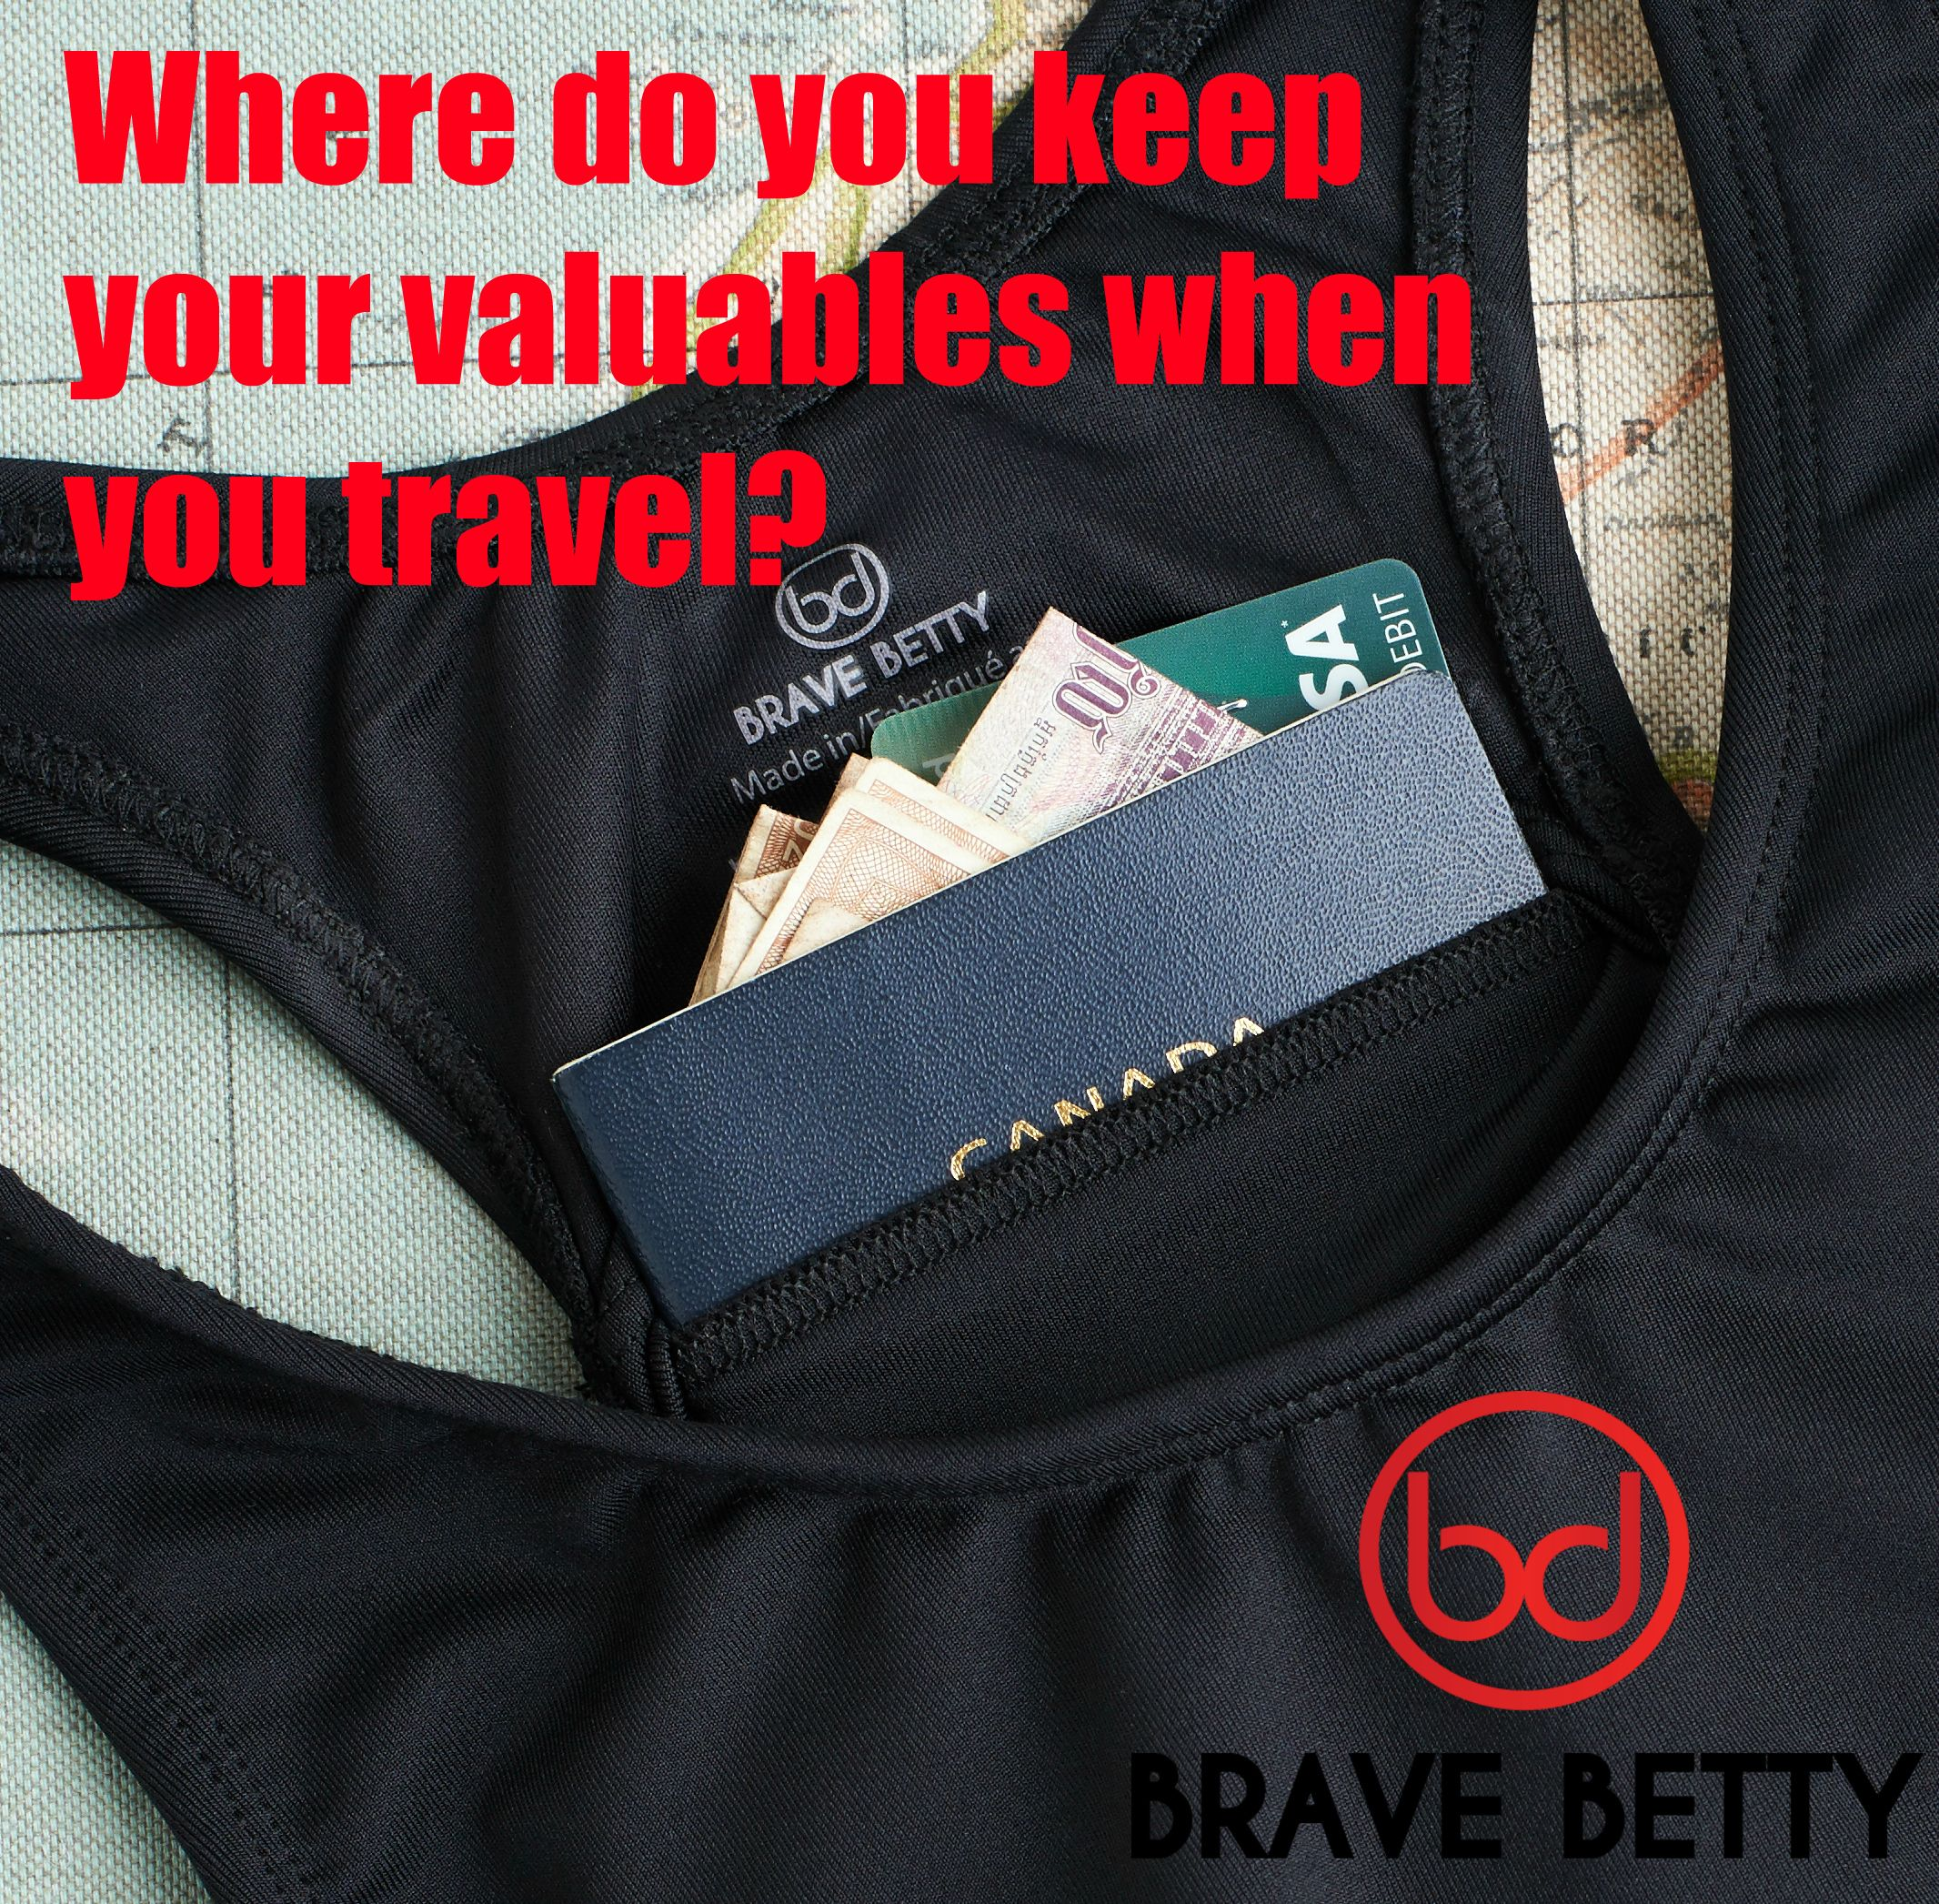 Fits like a sports bra, offers the security of a money